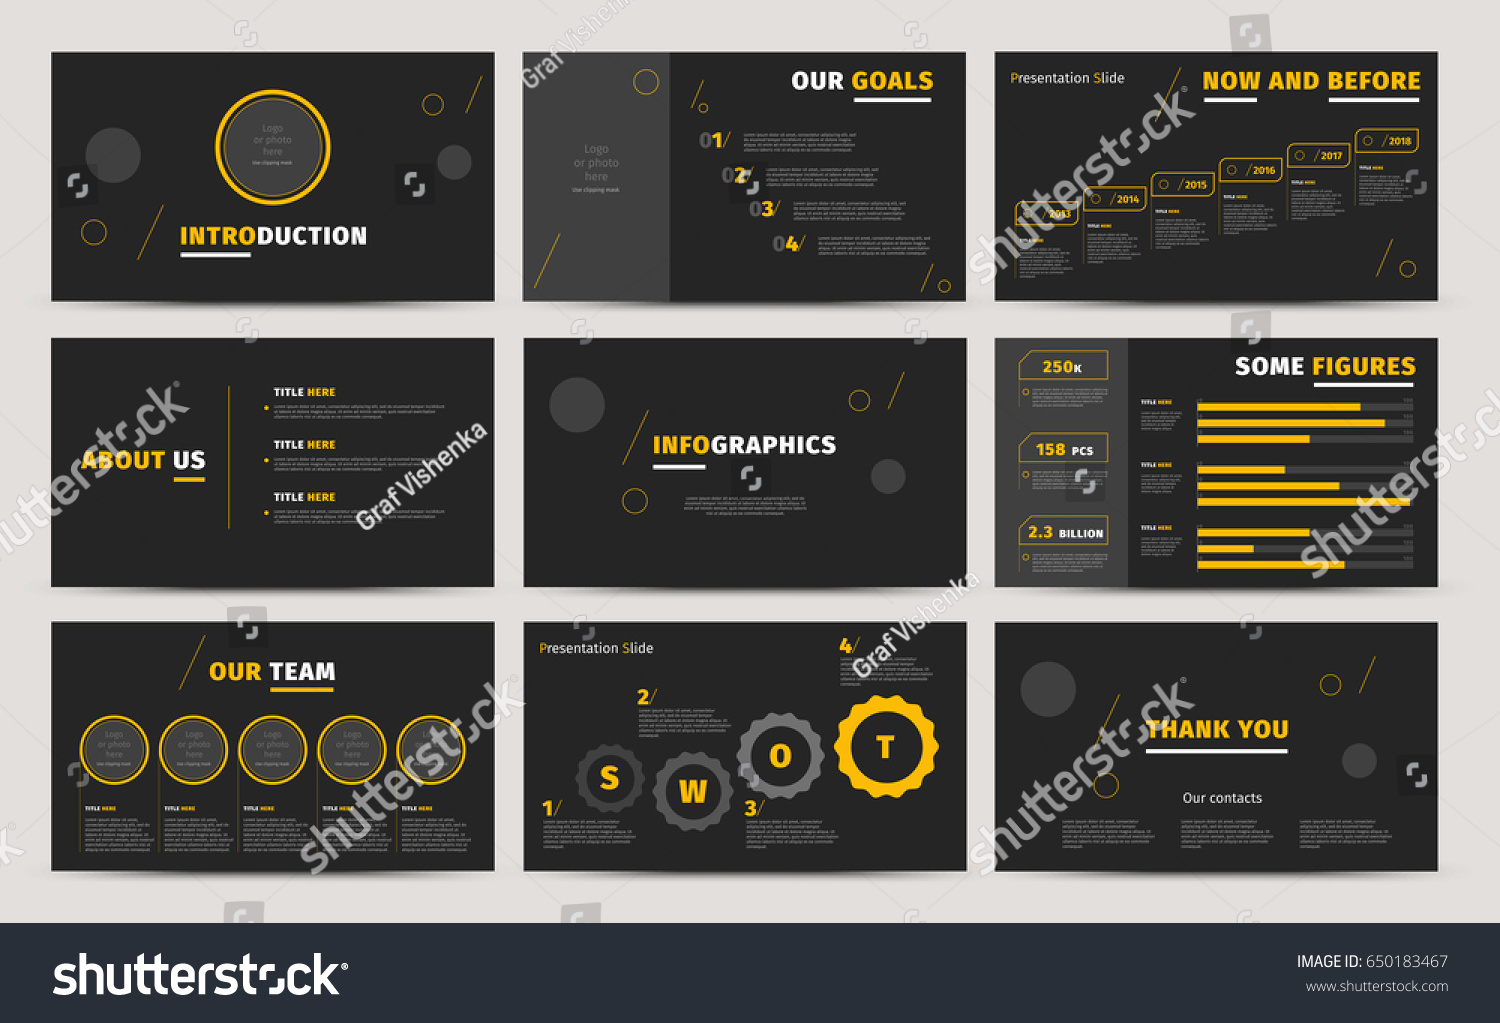 Corporate Presentation Slides Design Creative Business Stock Vector